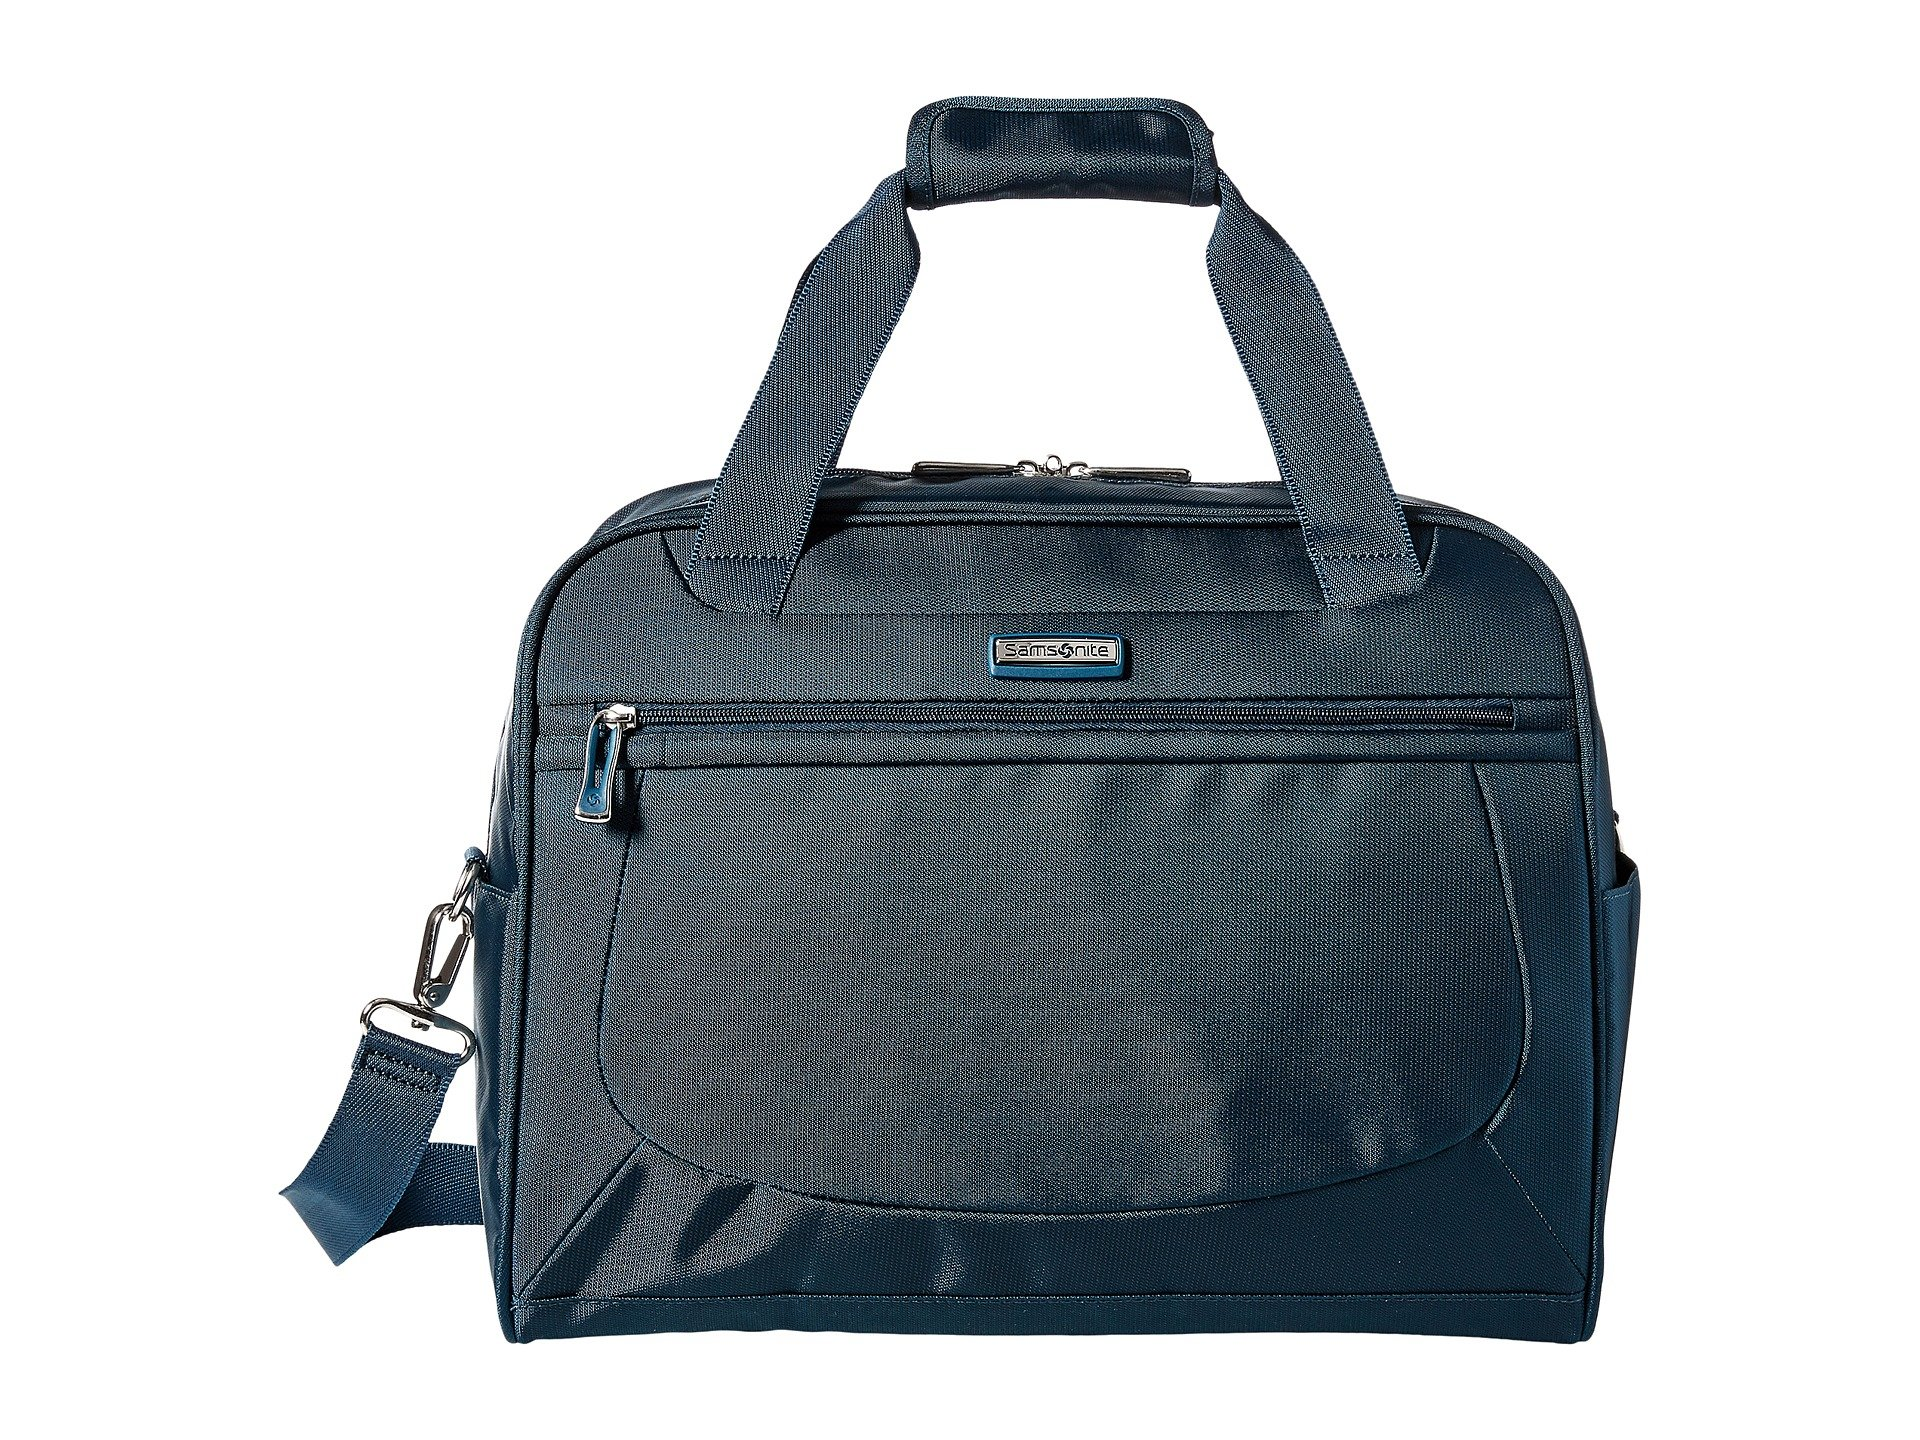 Bolso de Lona para Hombre Samsonite Mightlight 2 Boarding Bag  + Samsonite en VeoyCompro.net